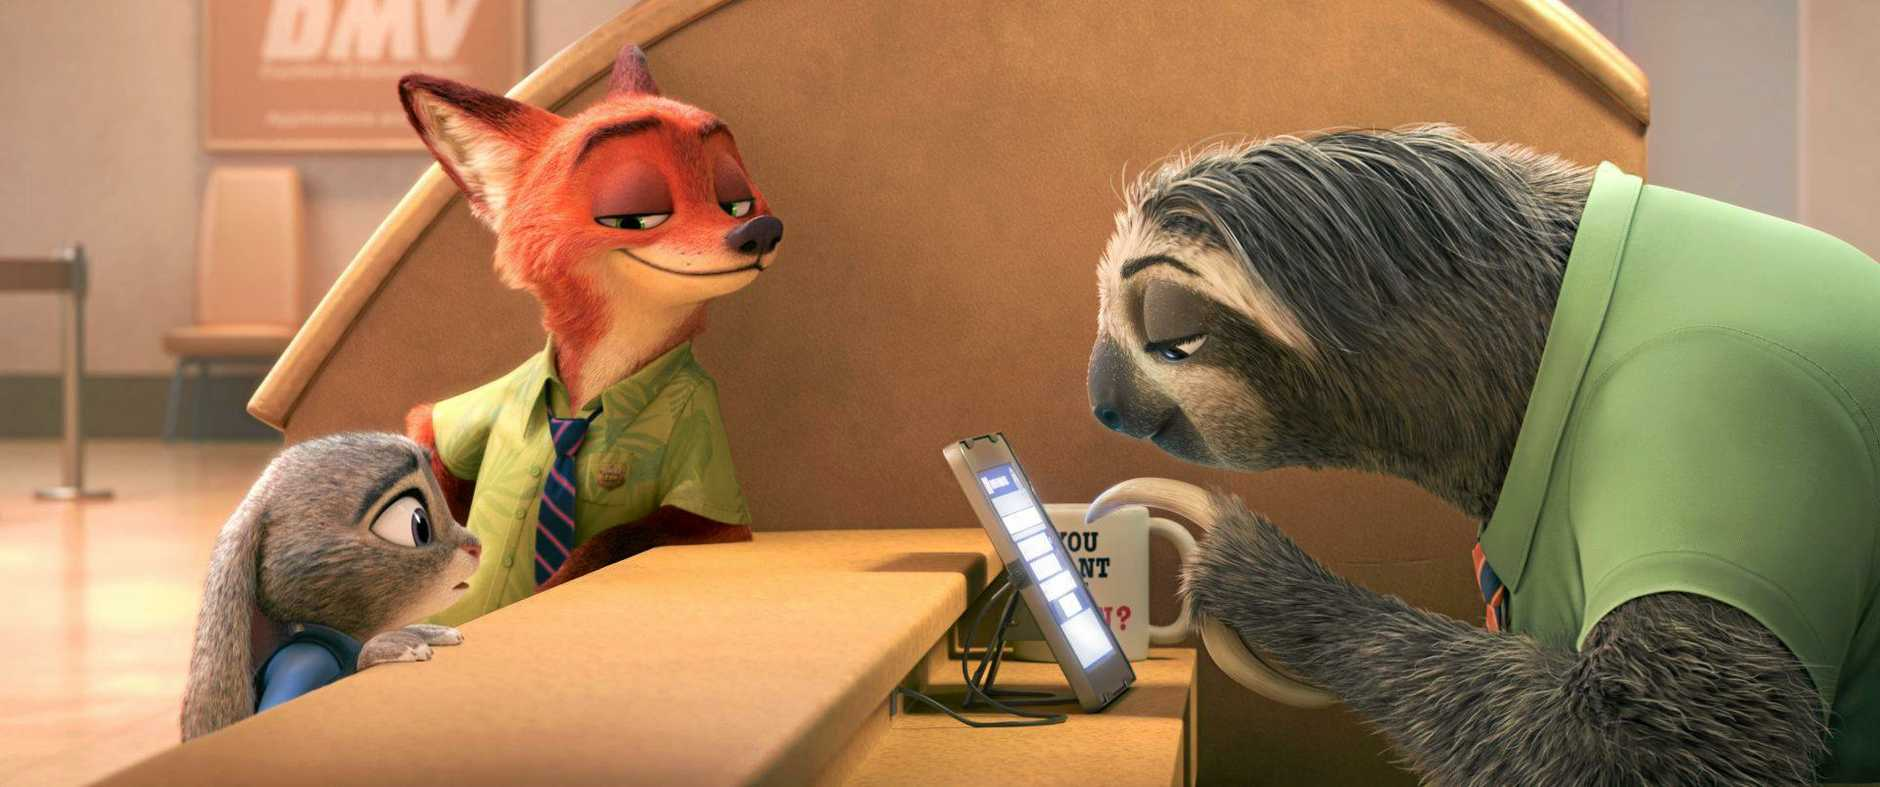 A scene from the animated movie Zootopia.